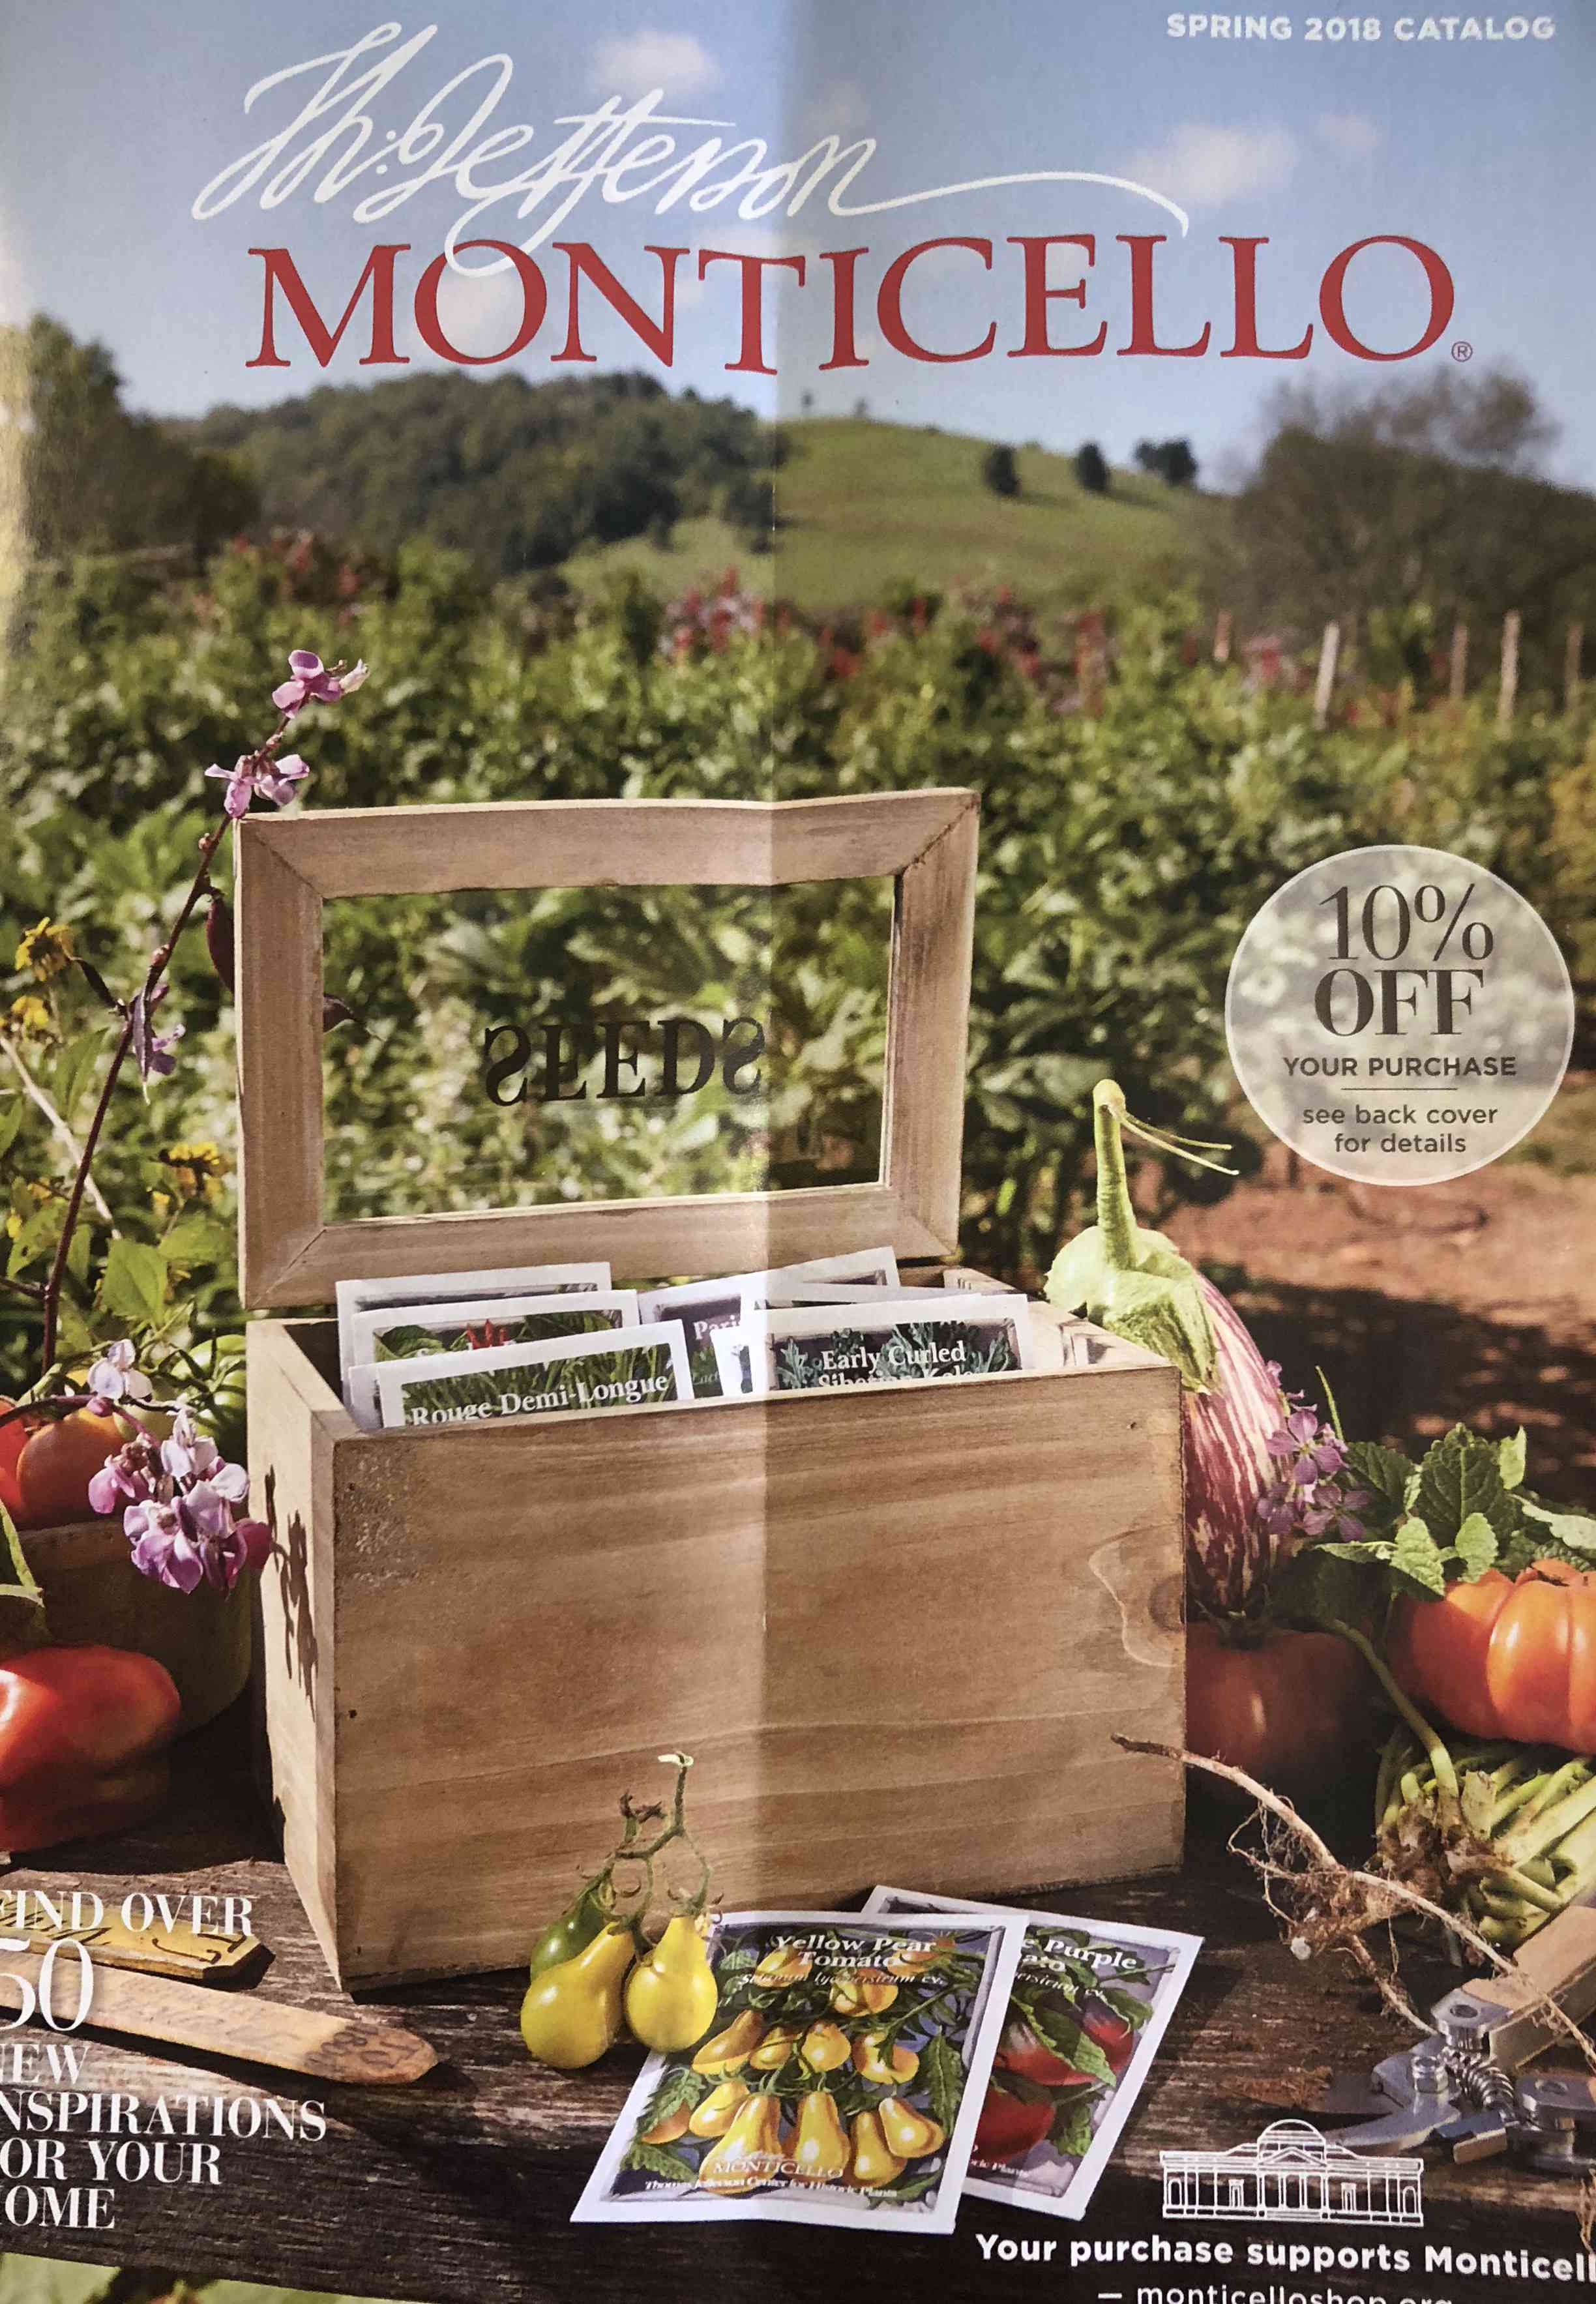 The Spring 2018 Monticello seed catalog